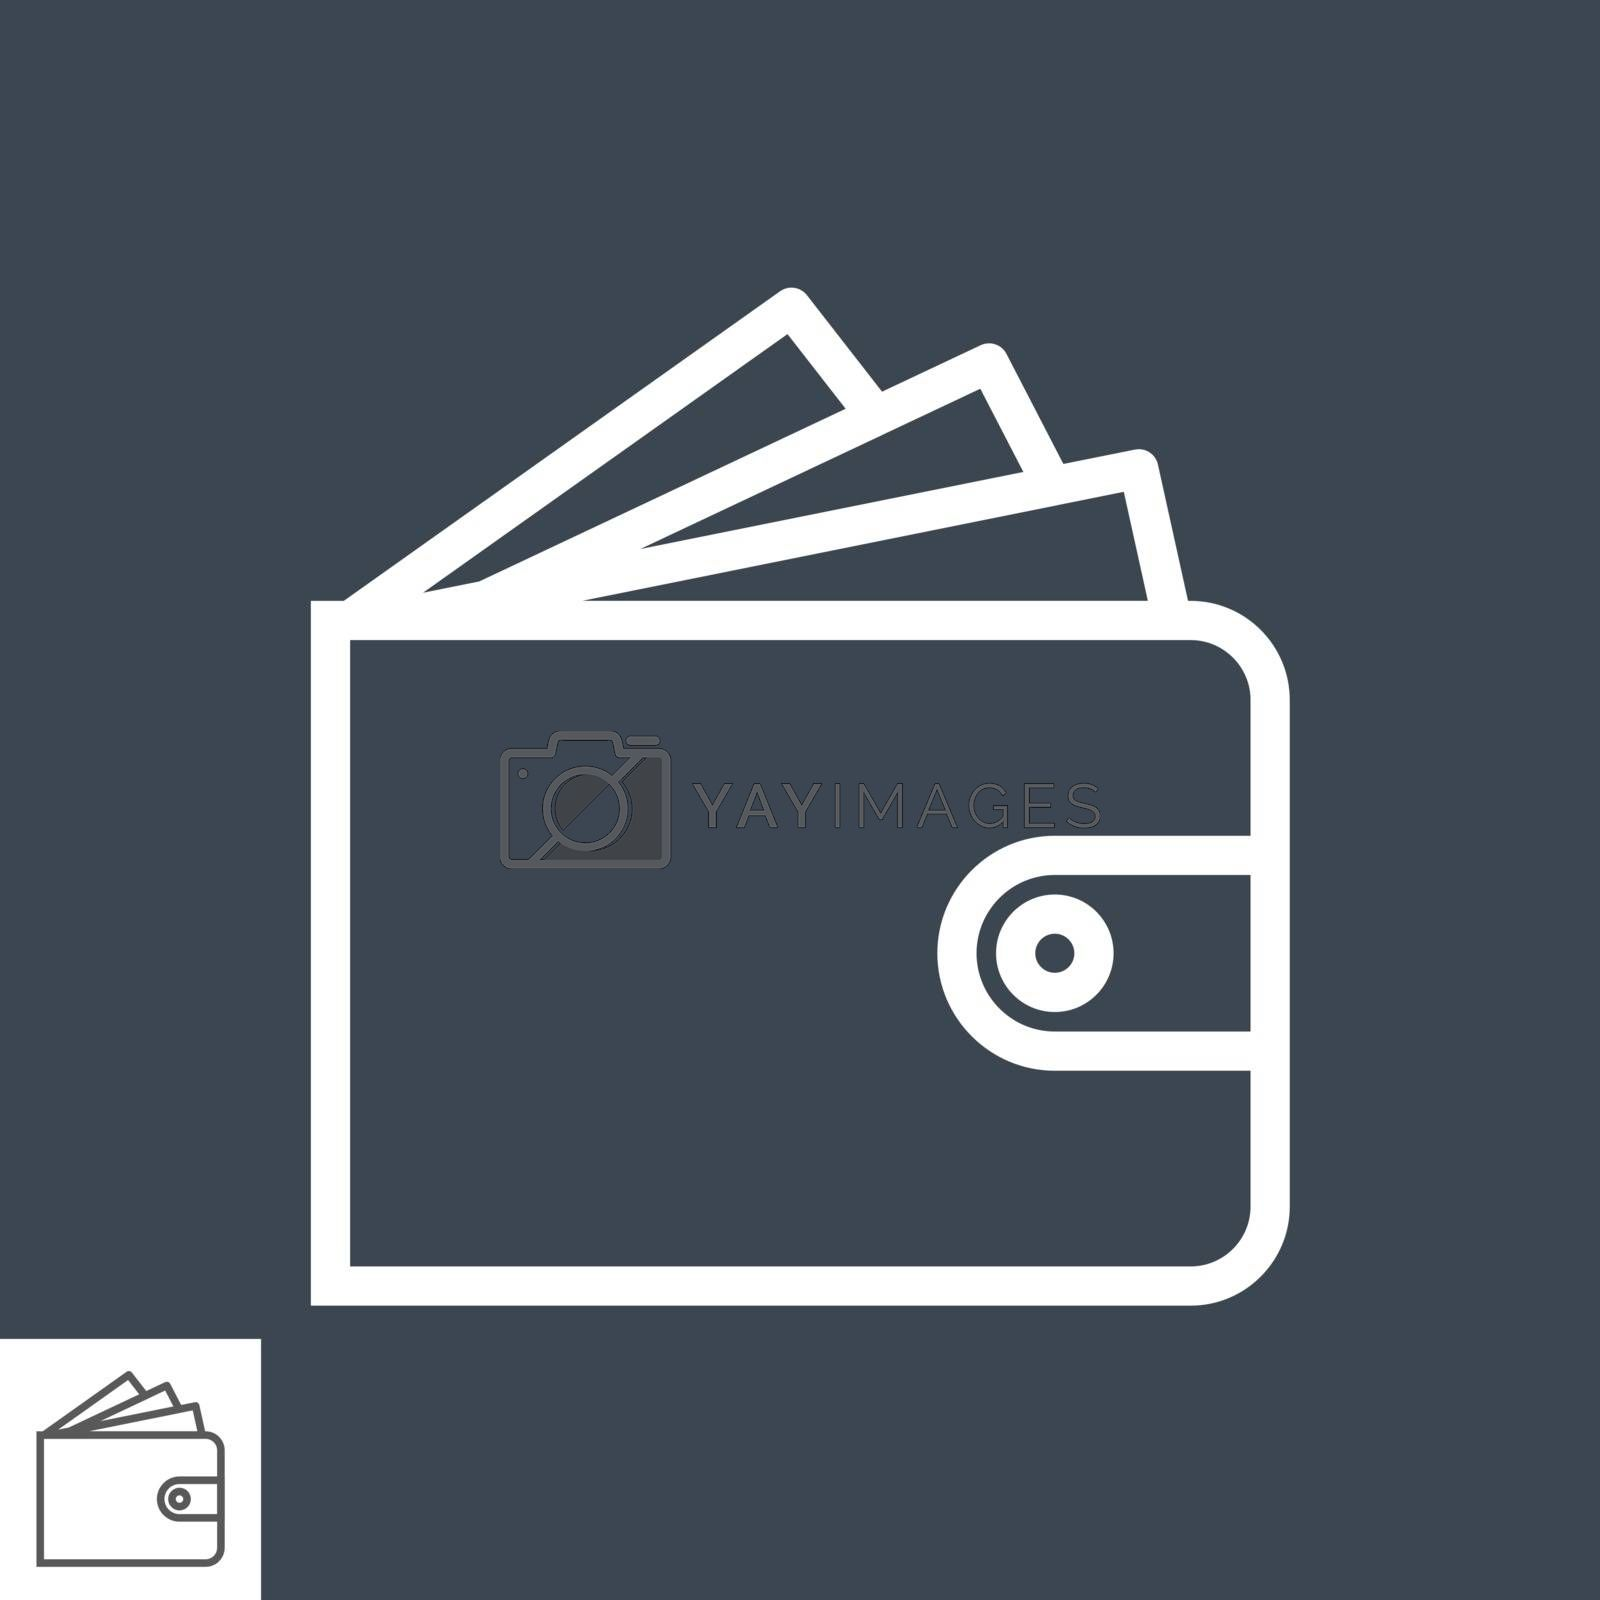 Wallet Thin Line Vector Icon. Flat icon isolated on the black background. Editable EPS file. Vector illustration.